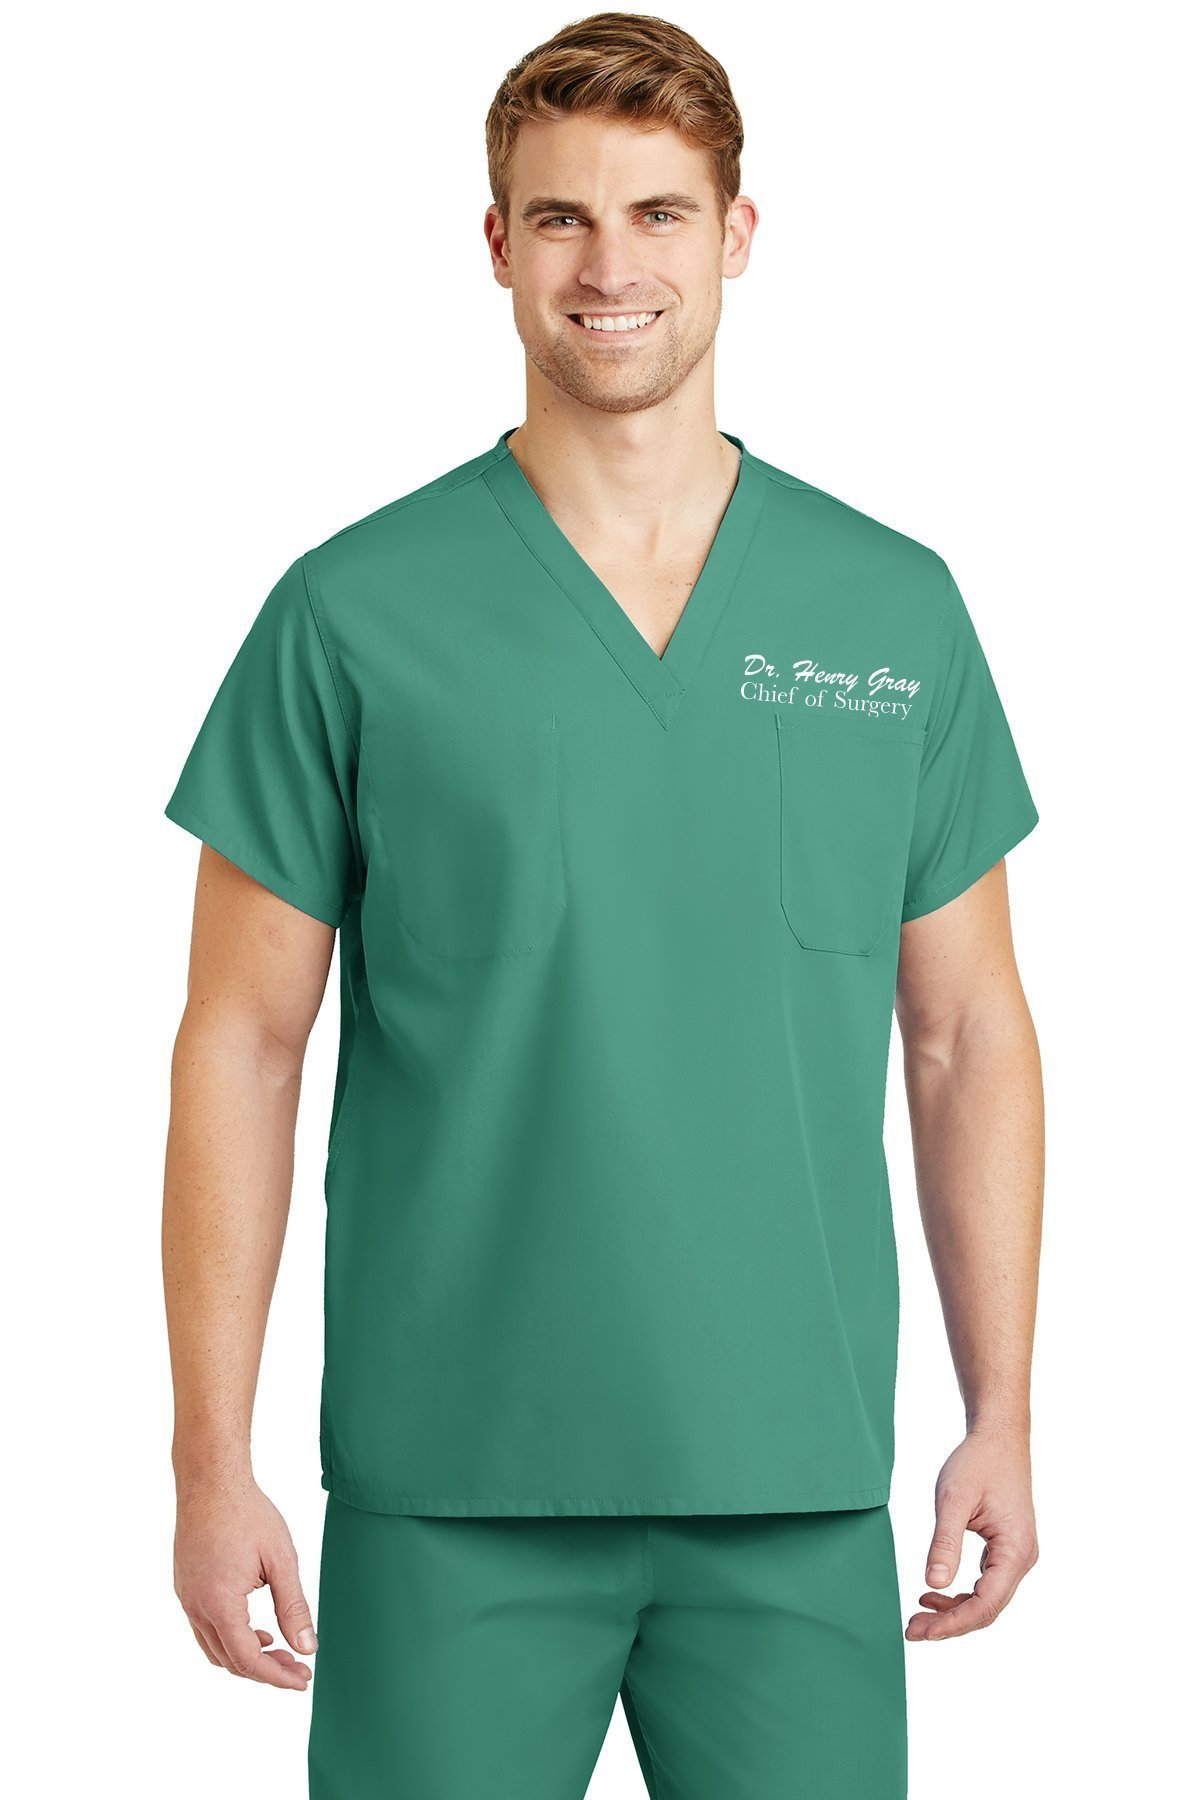 DOCAZON   PERSONALIZED Embroidered Name Scrub Top + Bottom Set for Medical Professional   Doctor Physician Nurse MD DO PA NP Student Med Tech MLS Lab Surgery Laboratory (Jade Green, Men)